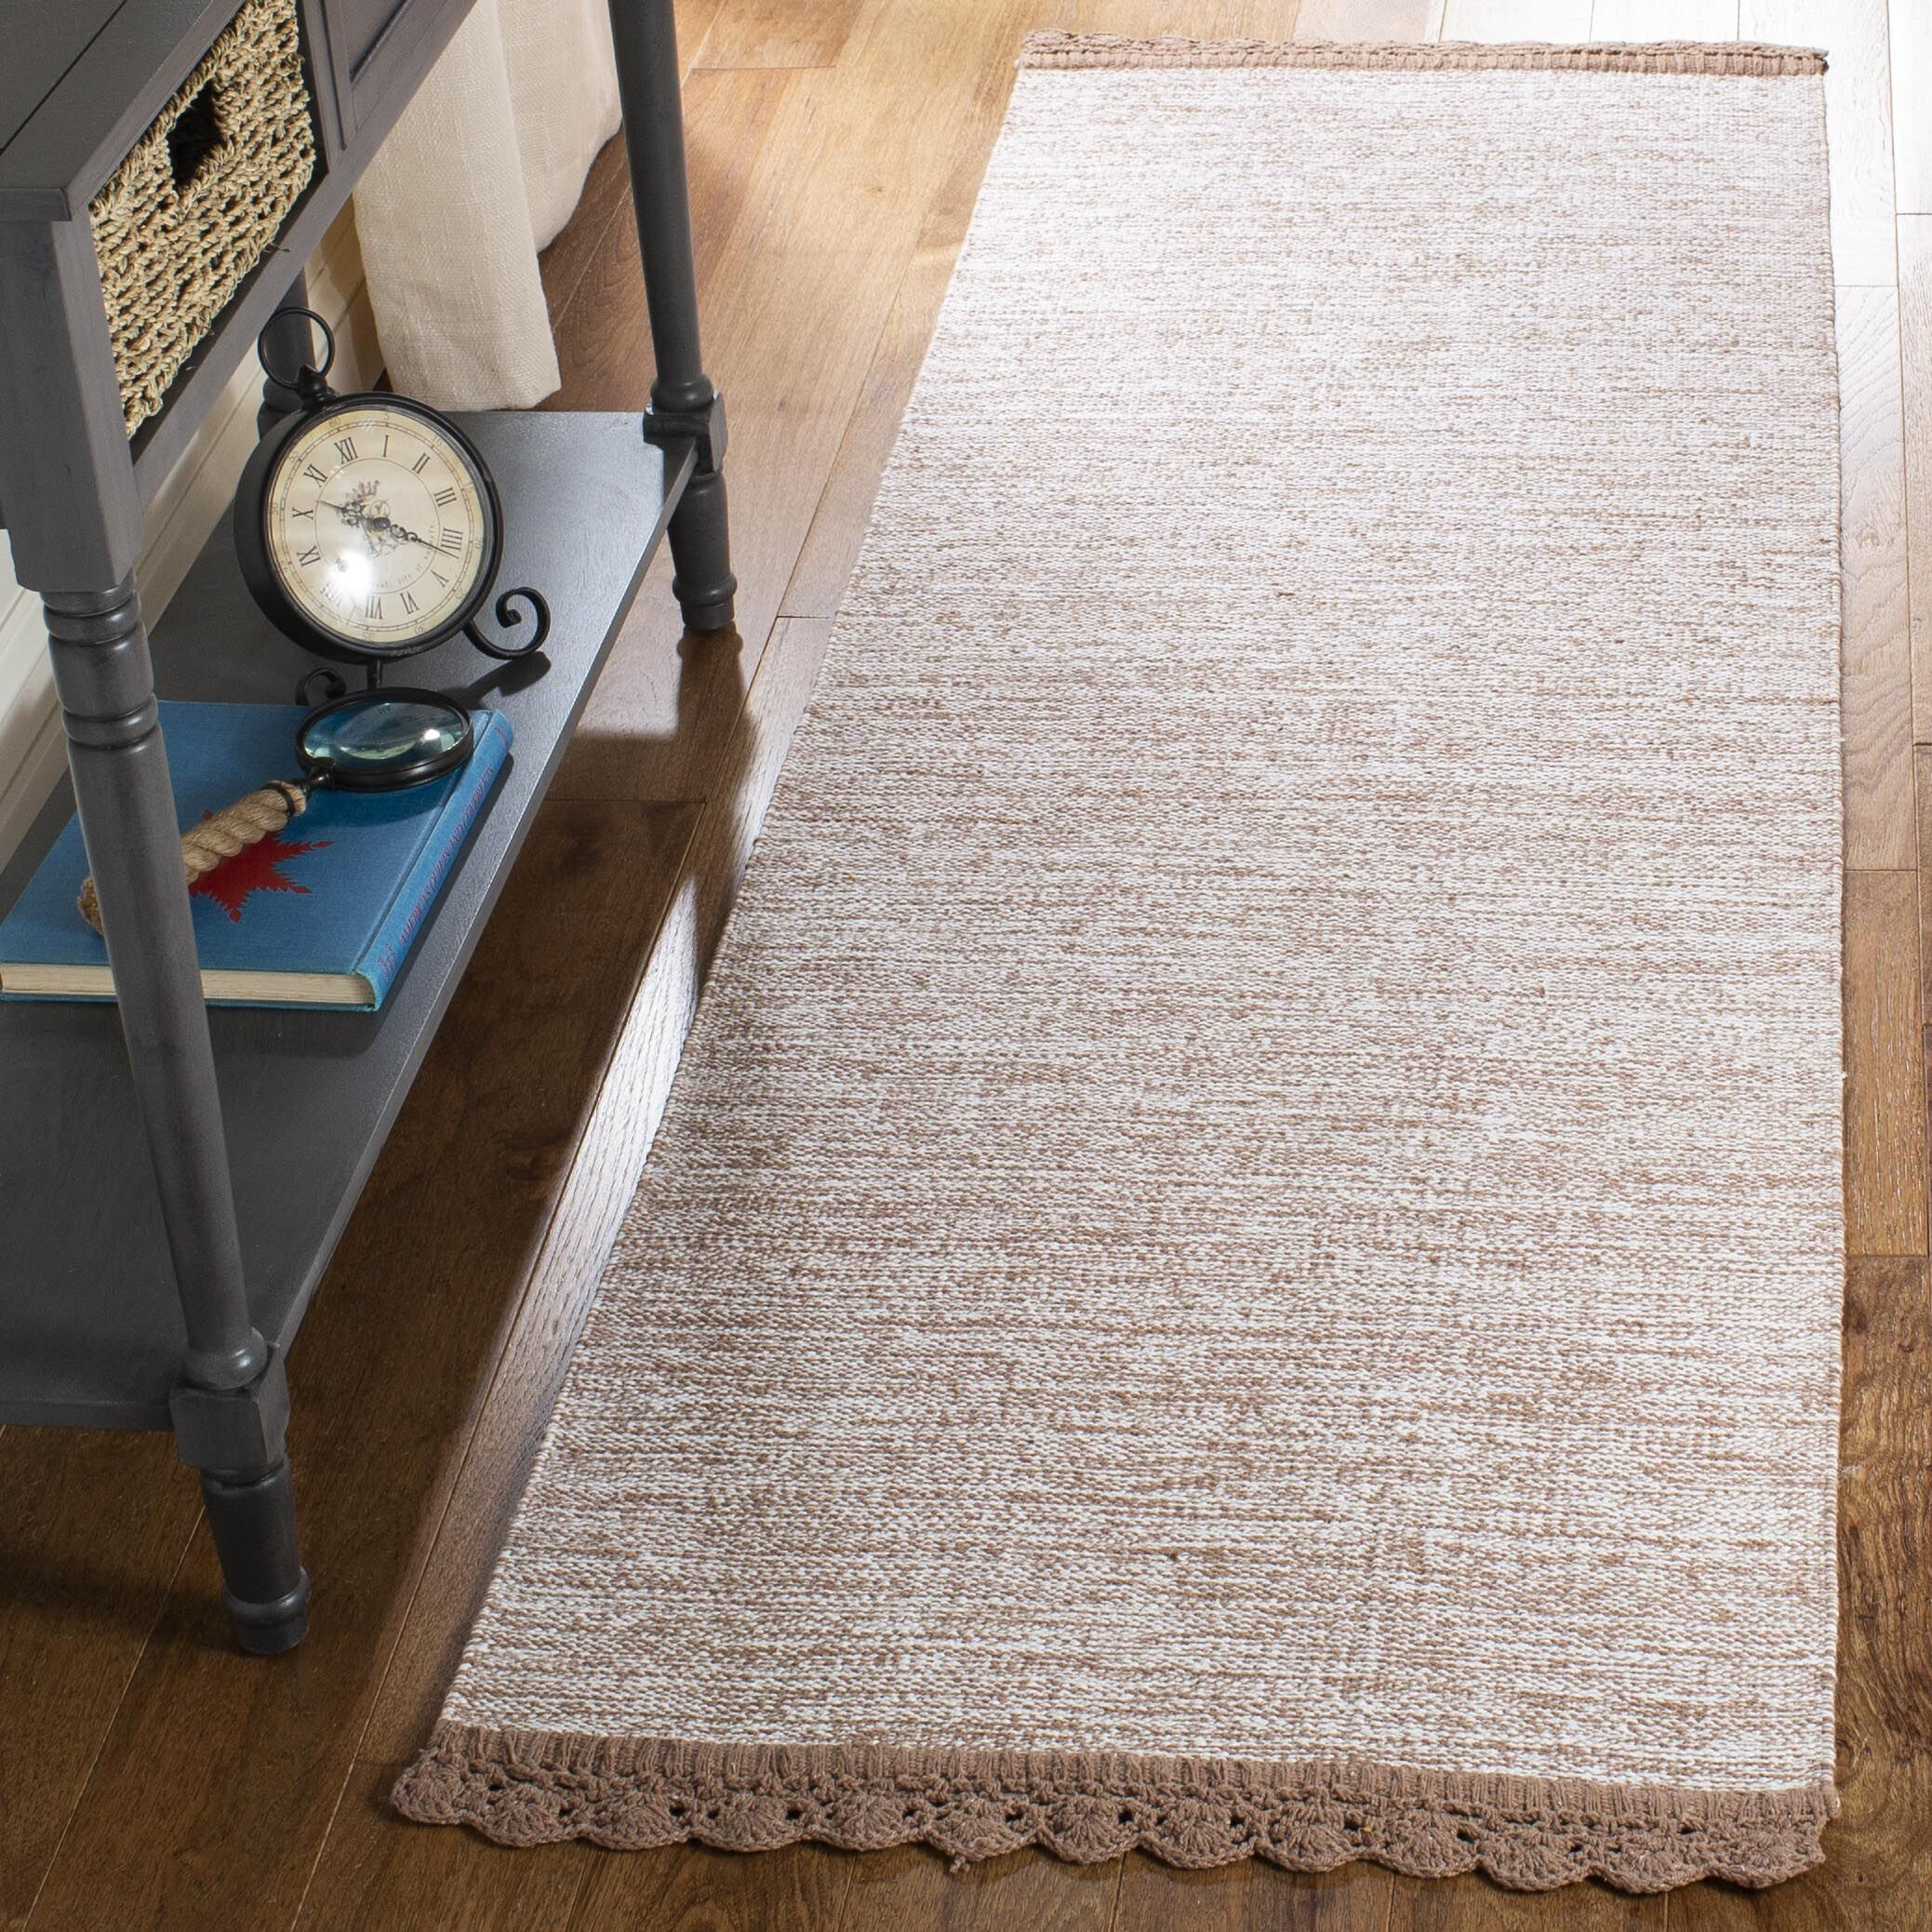 Mohnton Hand-Woven Brown/Gray Area Rug Rug Size: Runner 2'3